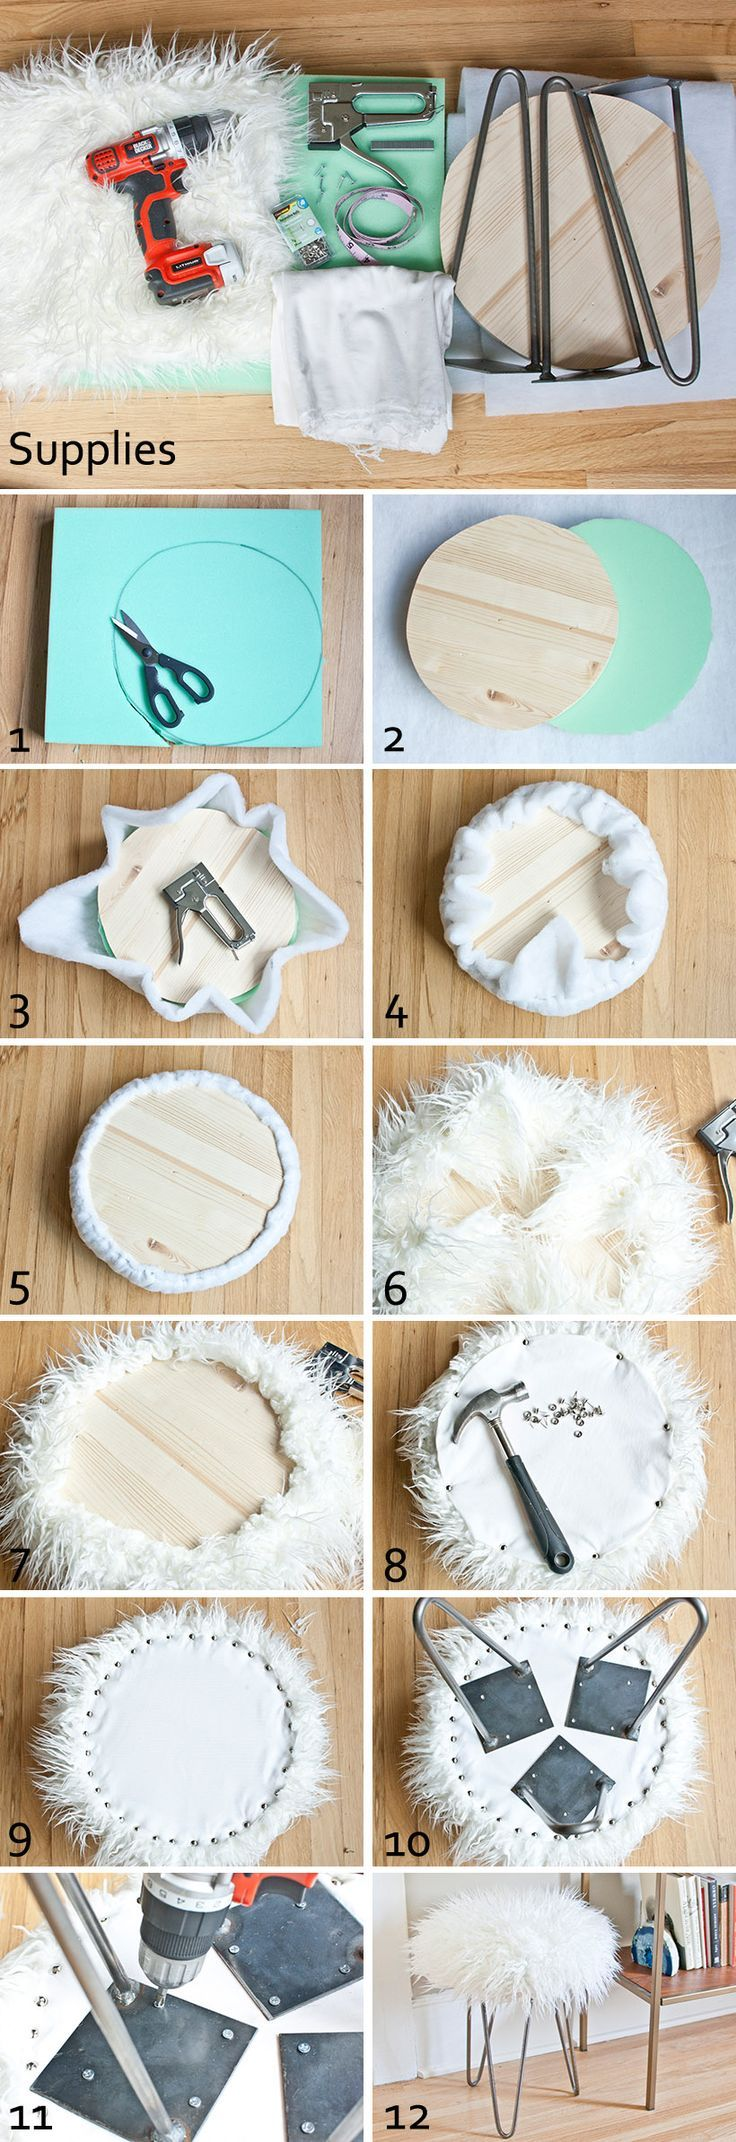 DIY Faux Fur Stool With Hairpin Legs Diy Craft Crafts Home Decor Easy Crafts  Diy Ideas Diy Crafts Crafty Diy Decor Craft Decorations How To Home Crafts  ...